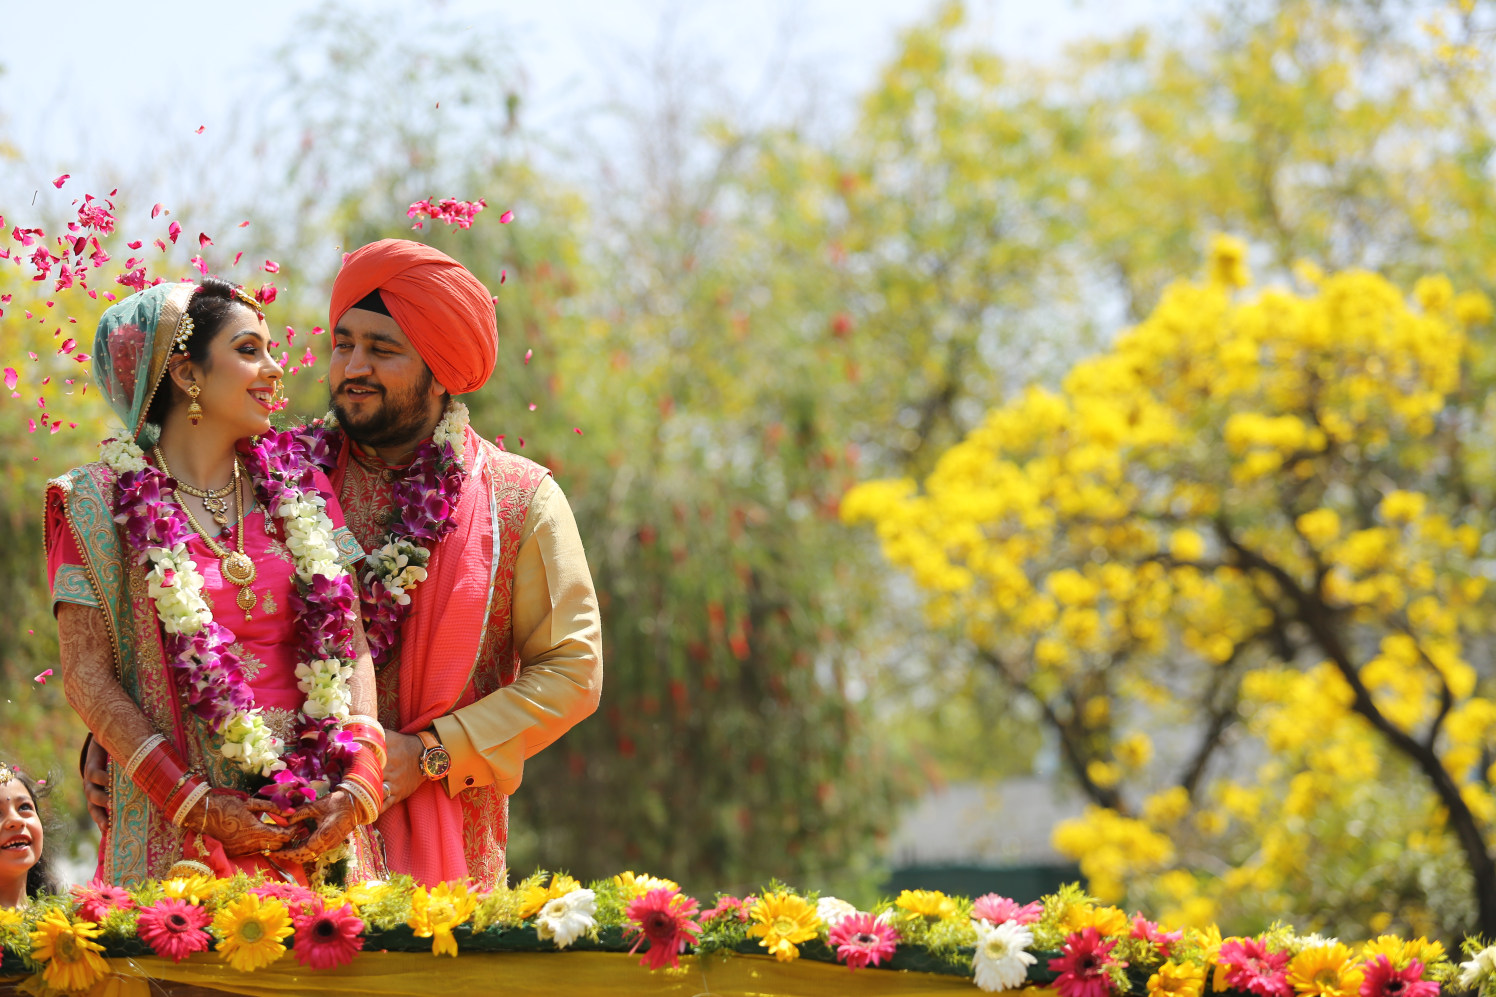 Stunning Background for Photoshoot of Bride and Groom by Amit Kumar Wedding-photography | Weddings Photos & Ideas